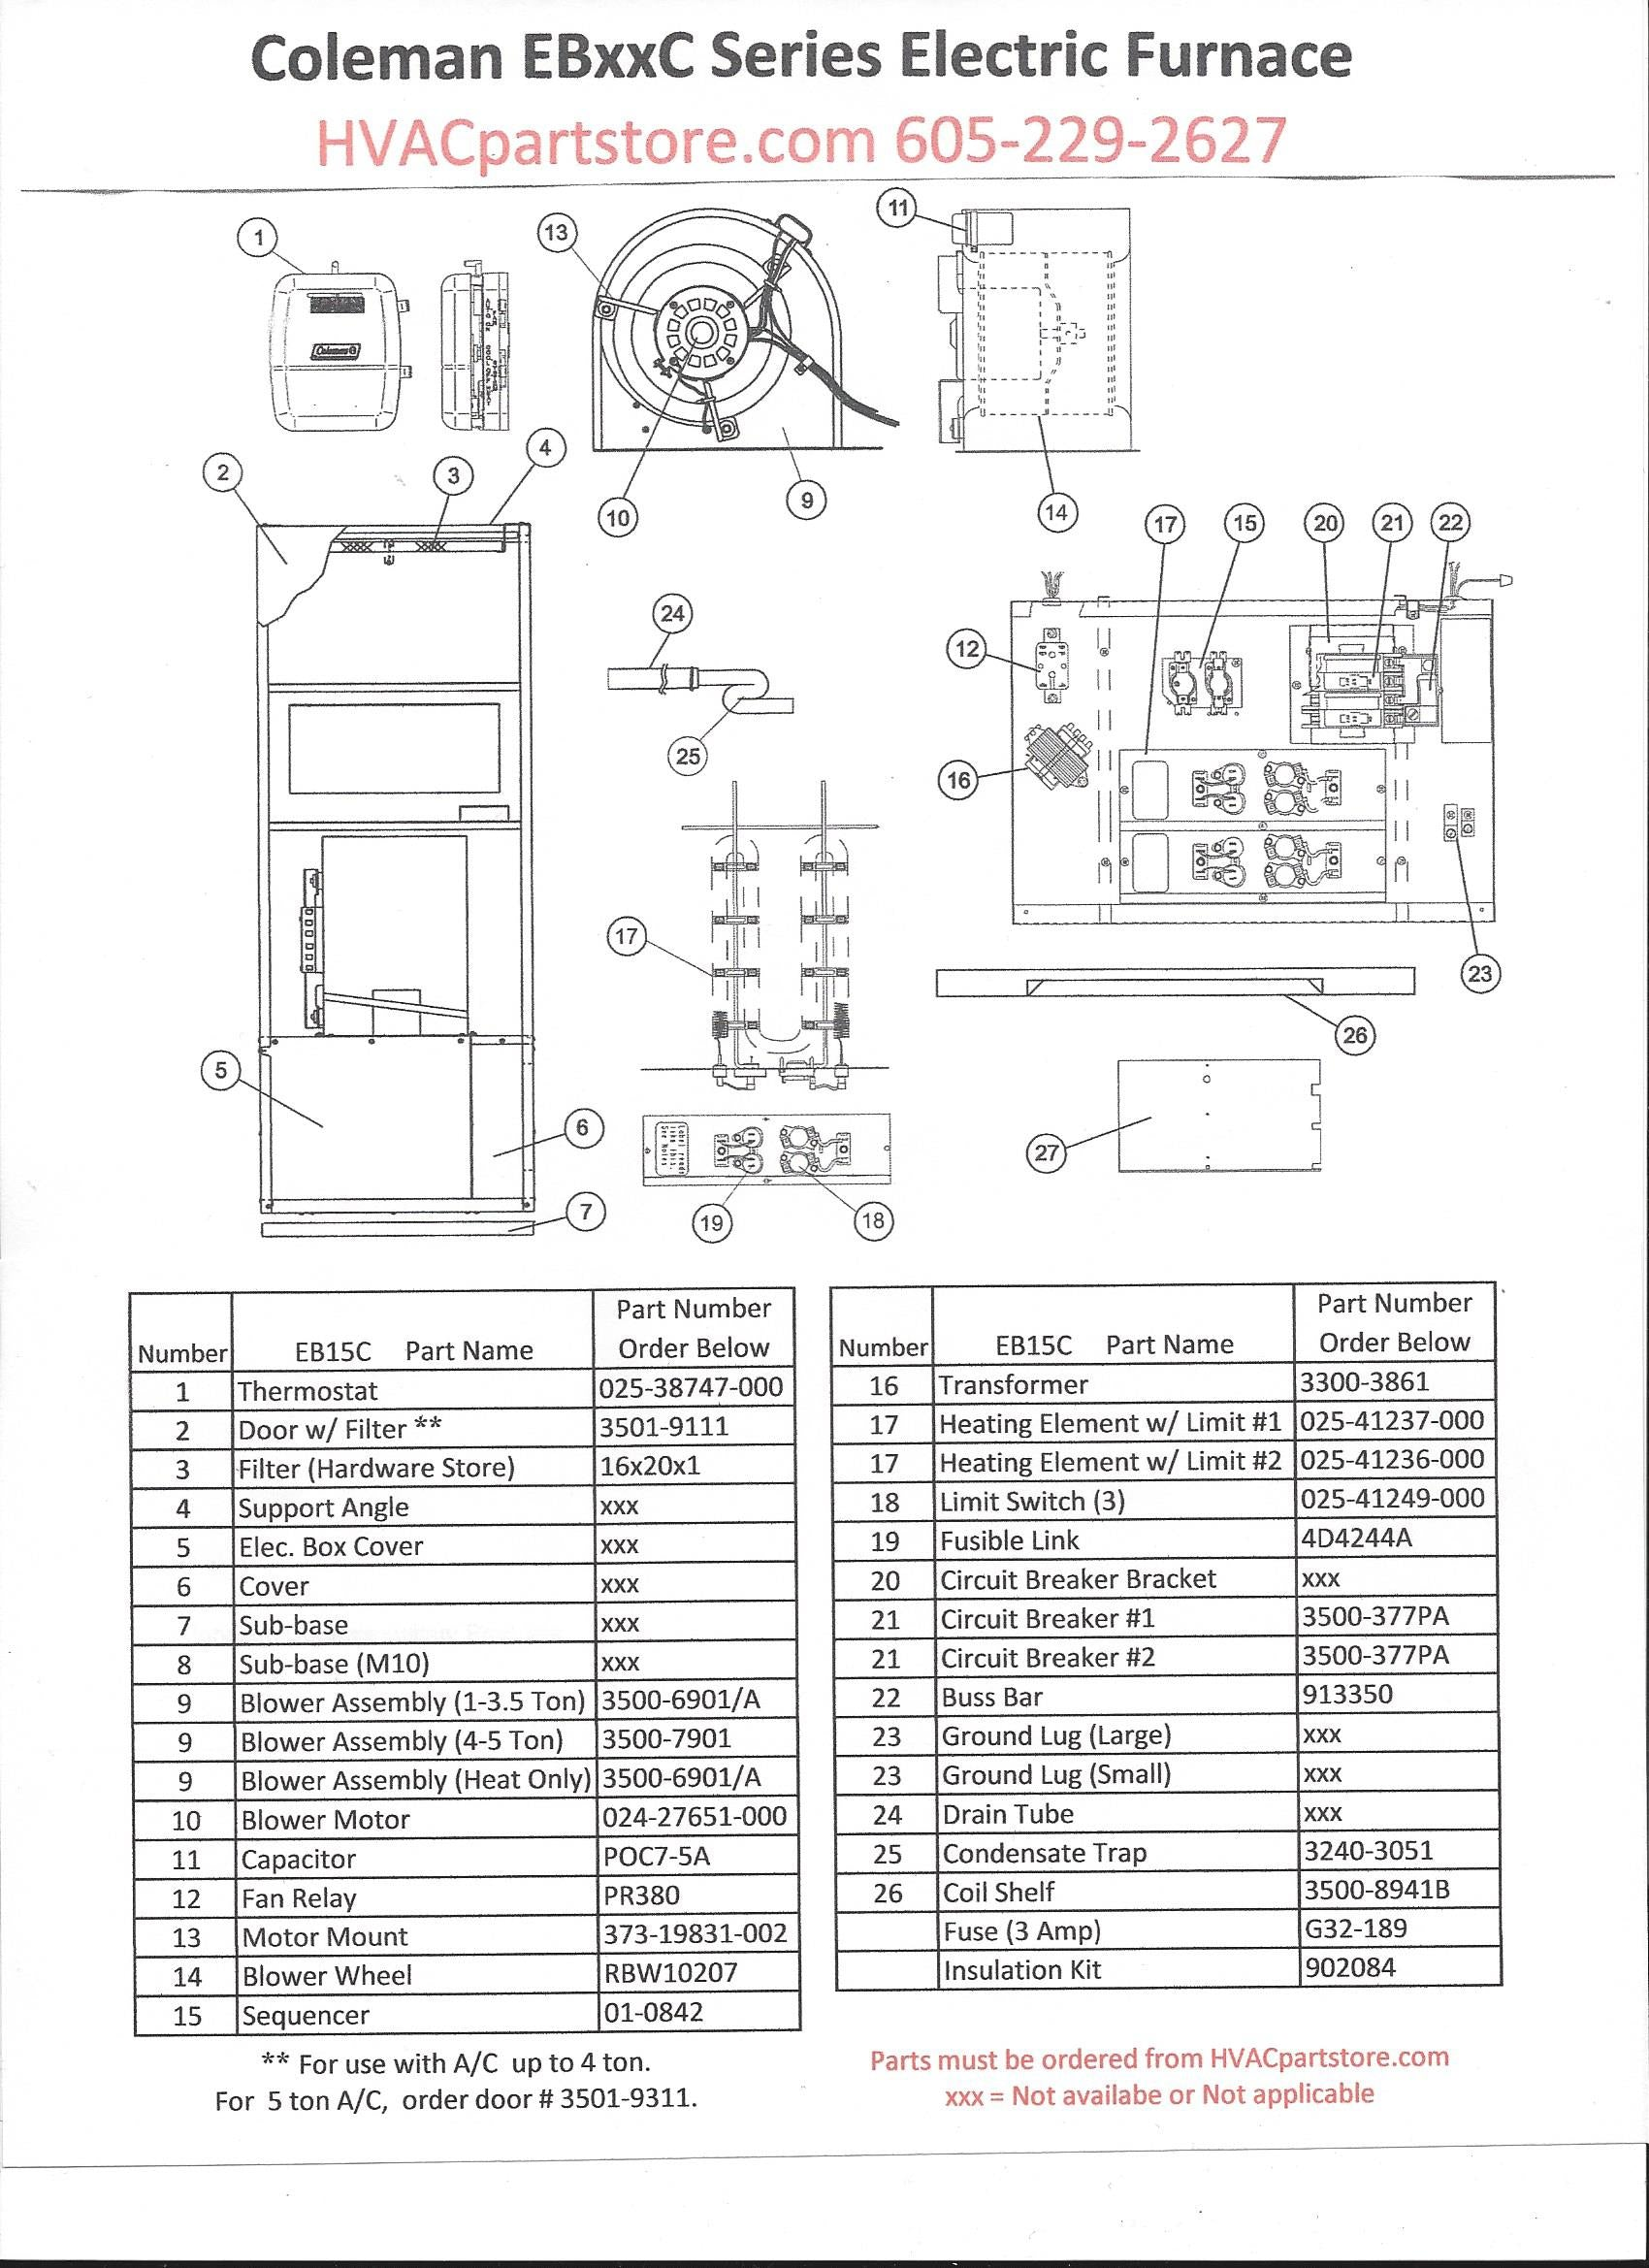 Click here to view wiring diagrams.